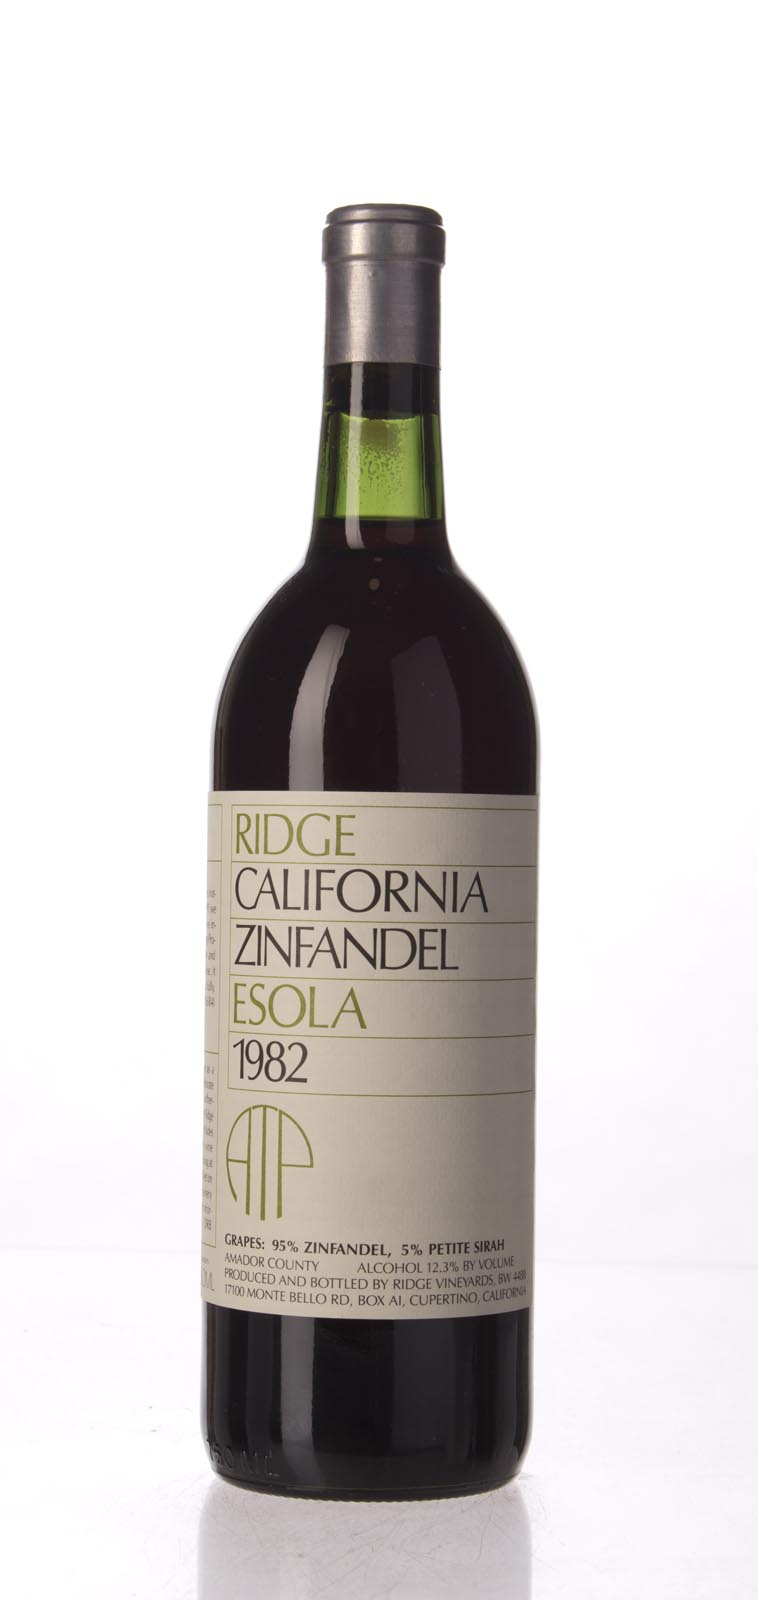 Ridge Zinfandel Esola Vineyard 1982, 750mL () from The BPW - Merchants of rare and fine wines.